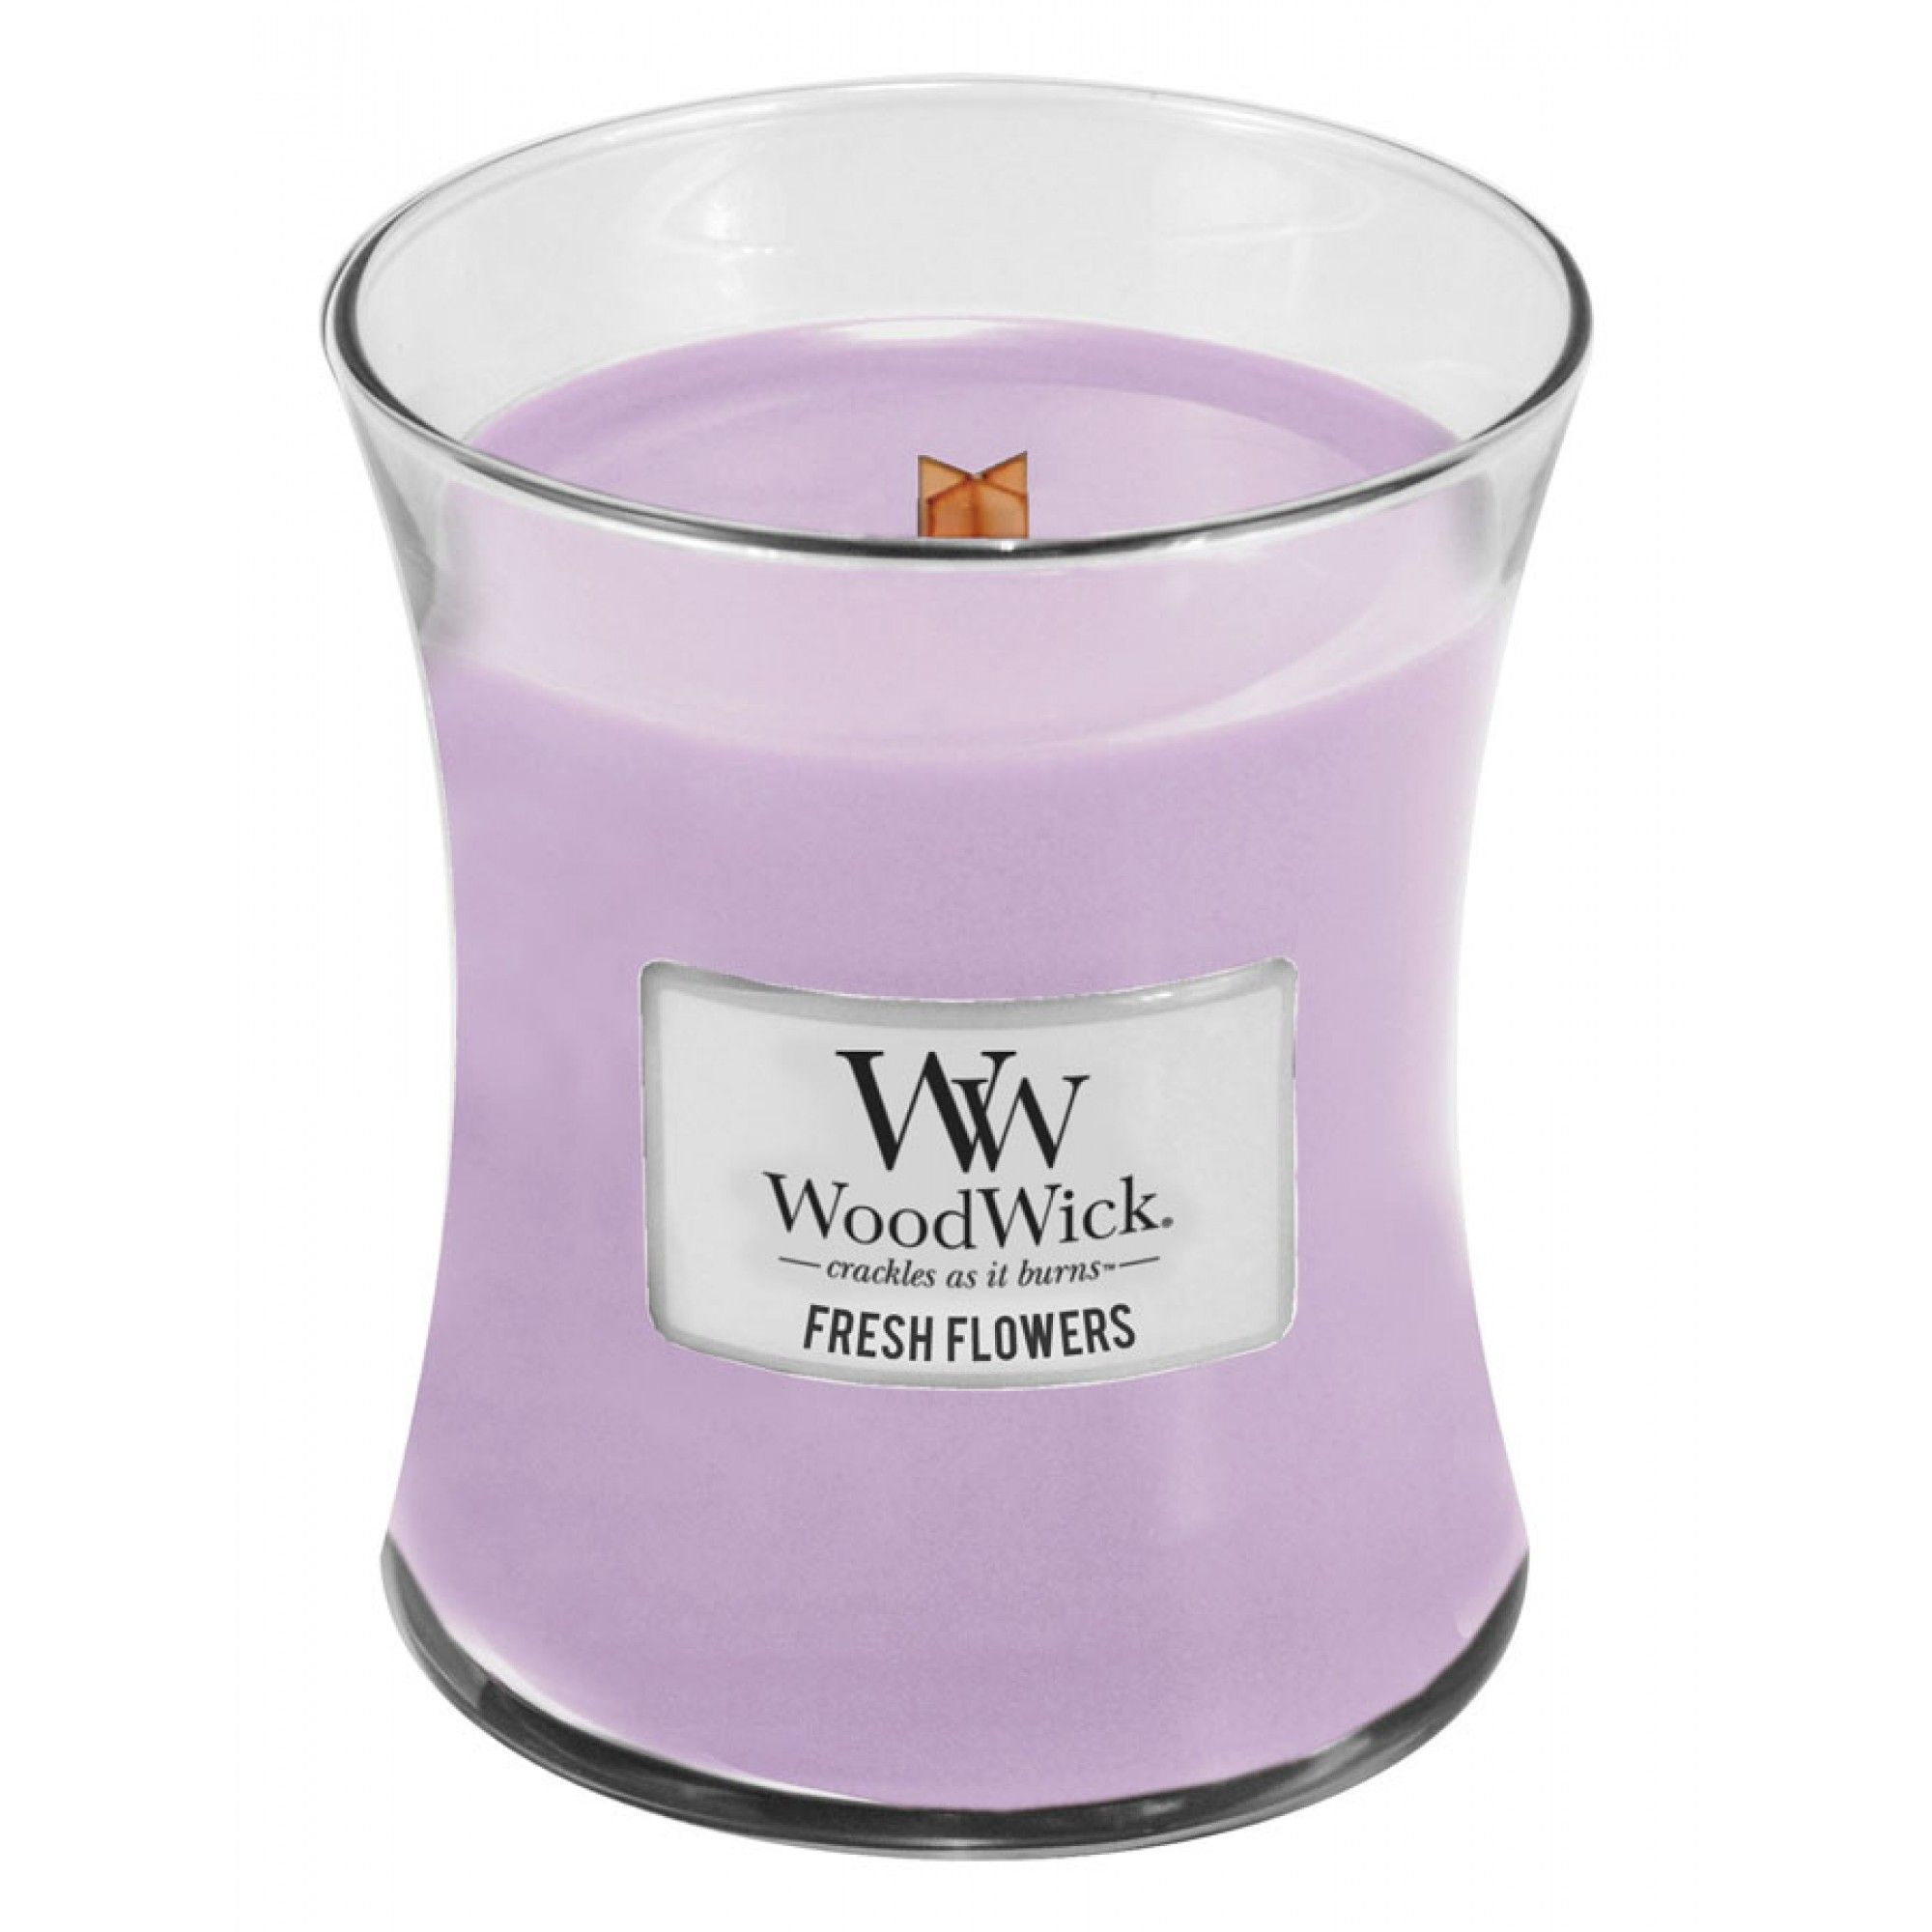 Fresh Flowers Medium WoodWick Candle Wood wick candles